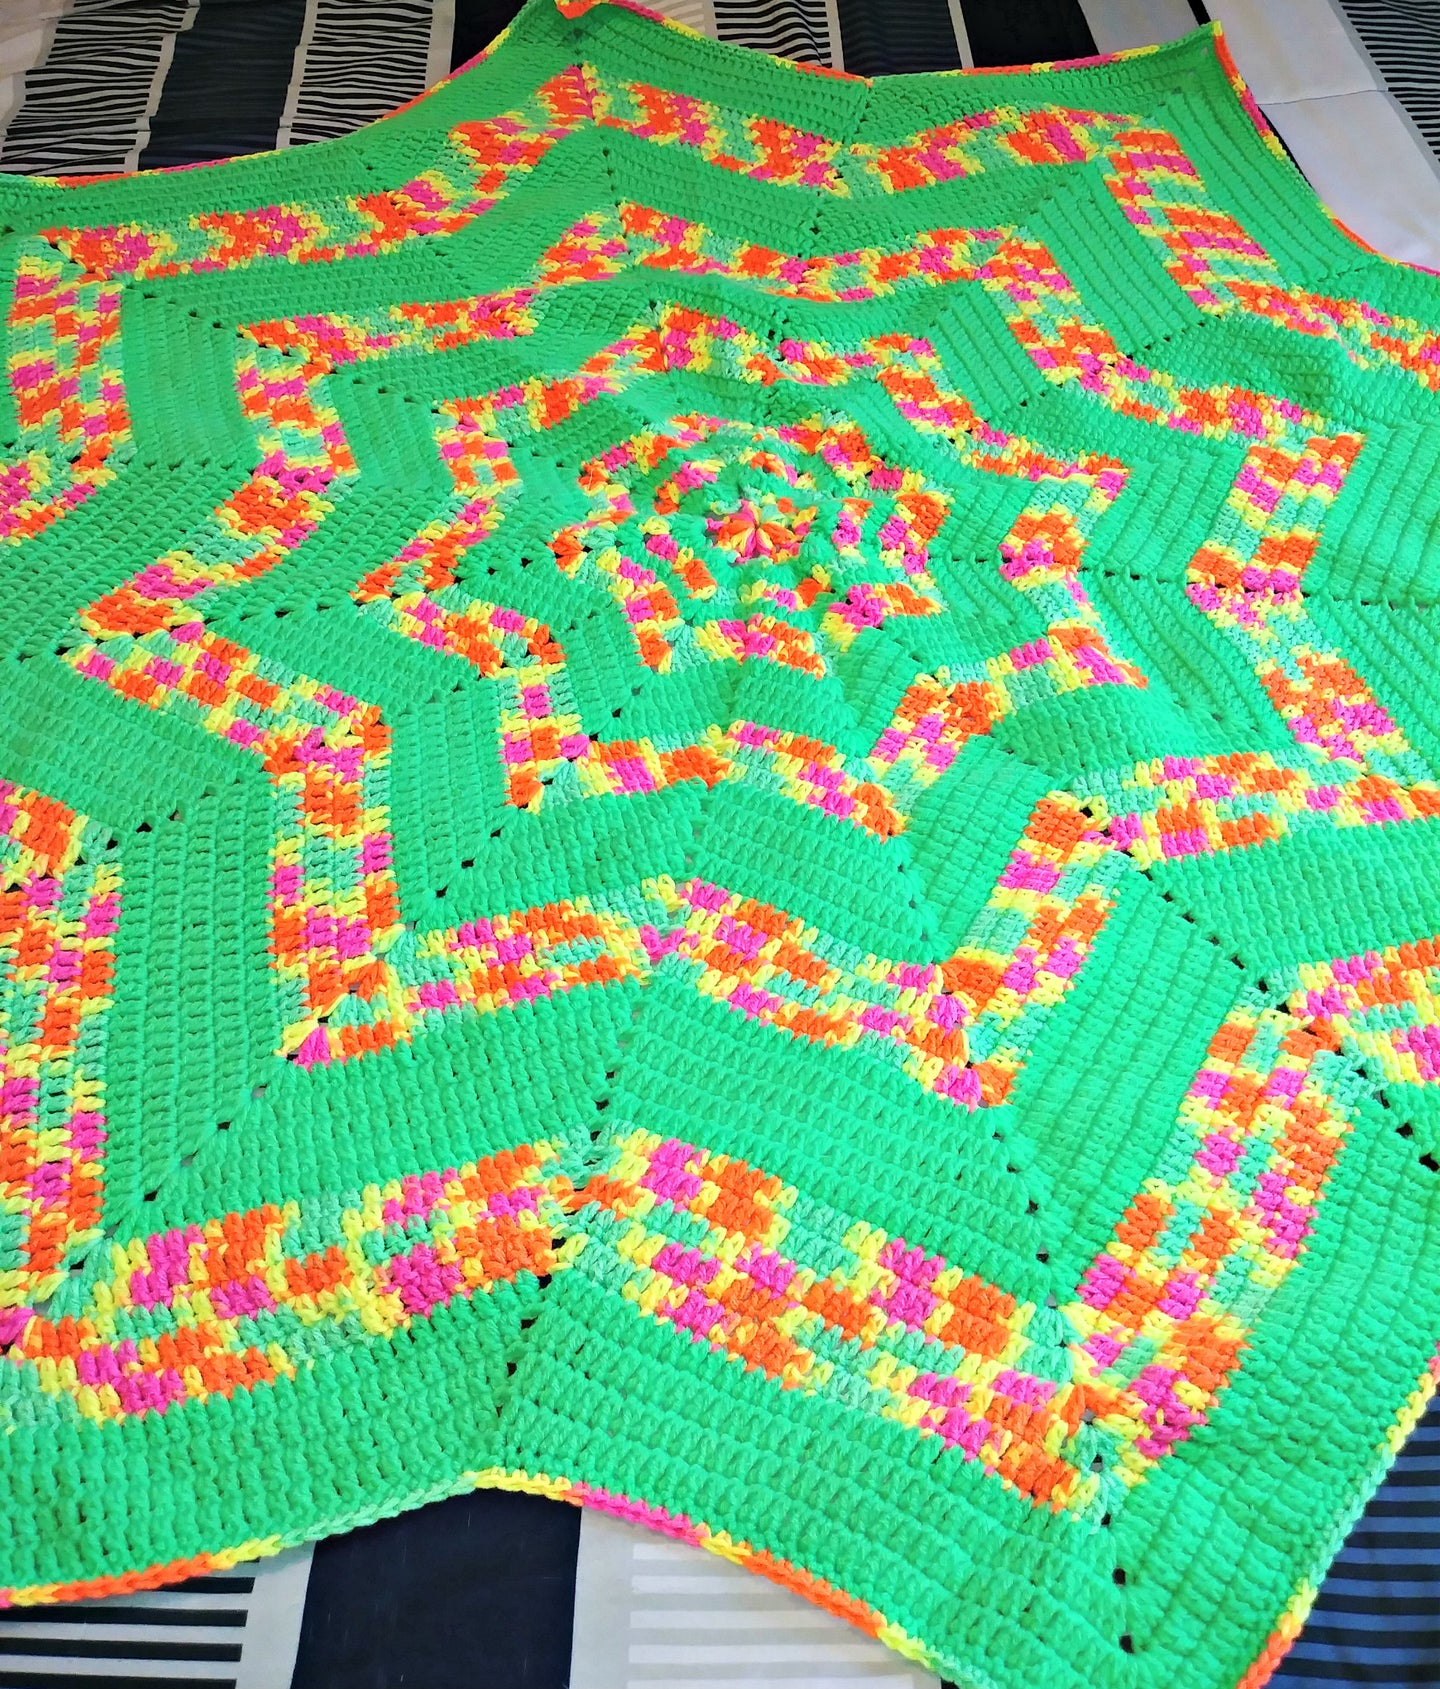 12 pt. Star Ripple Neon Green Baby Blanket 46